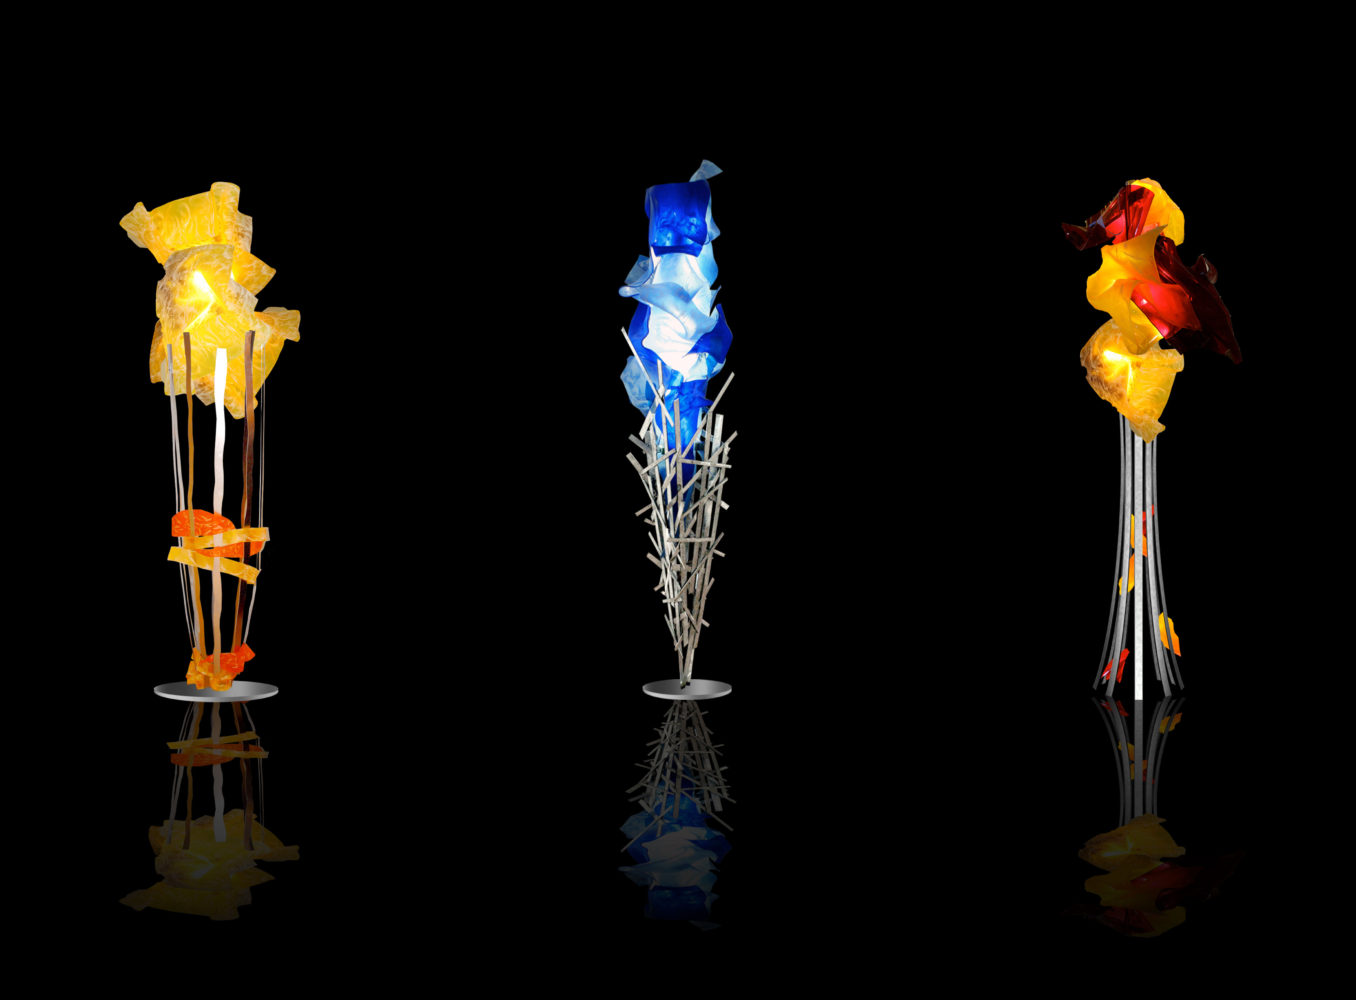 Light Sculptures Yellow Blue and Orange